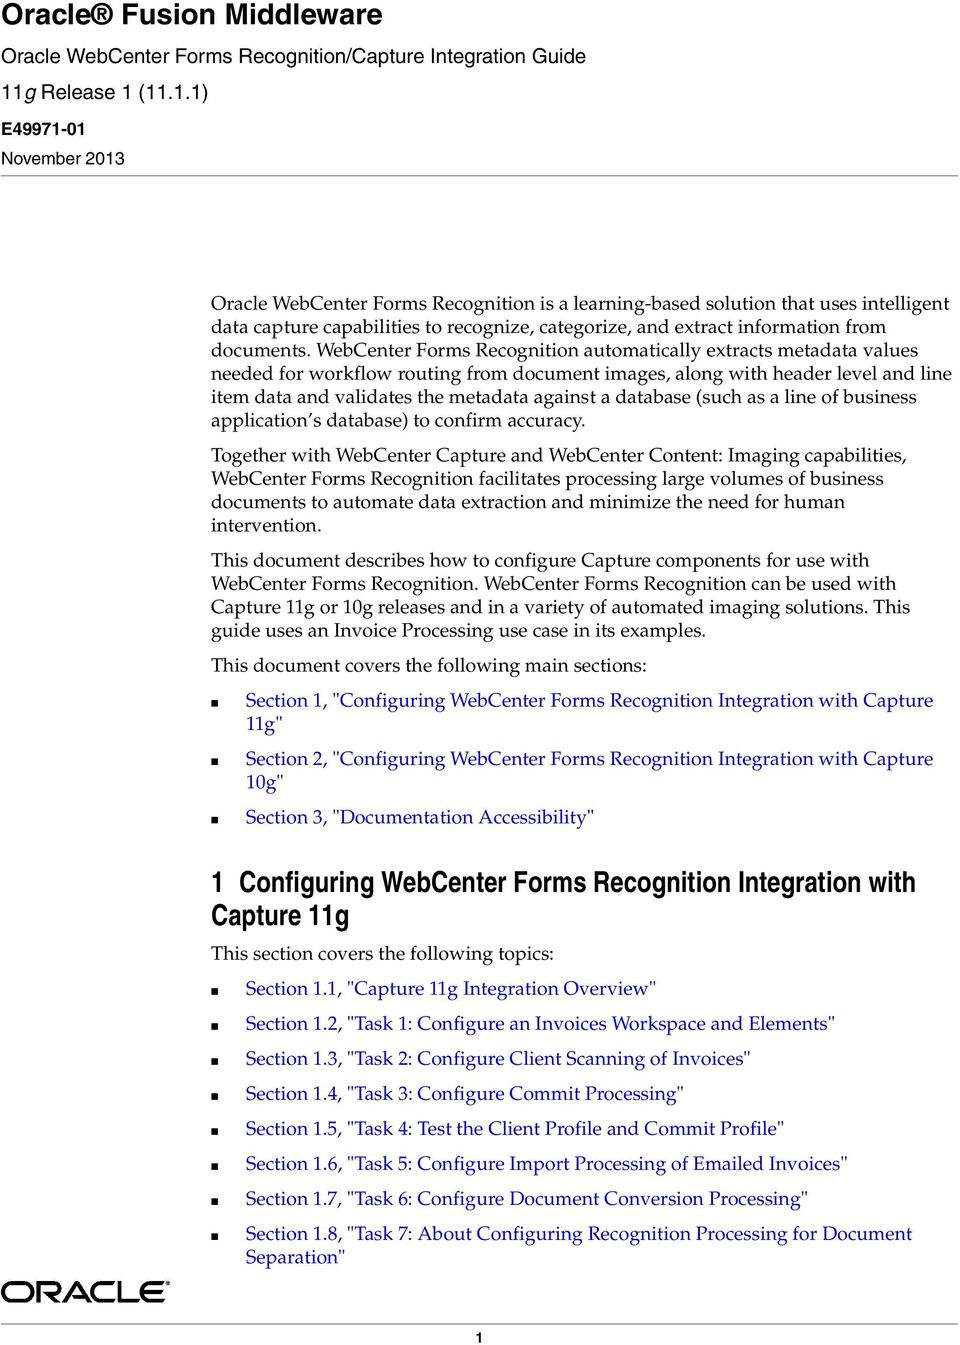 (11.1.1) E49971-01 November 2013 Oracle WebCenter Forms Recognition is a learning-based solution that uses intelligent data capture capabilities to recognize, categorize, and extract information from